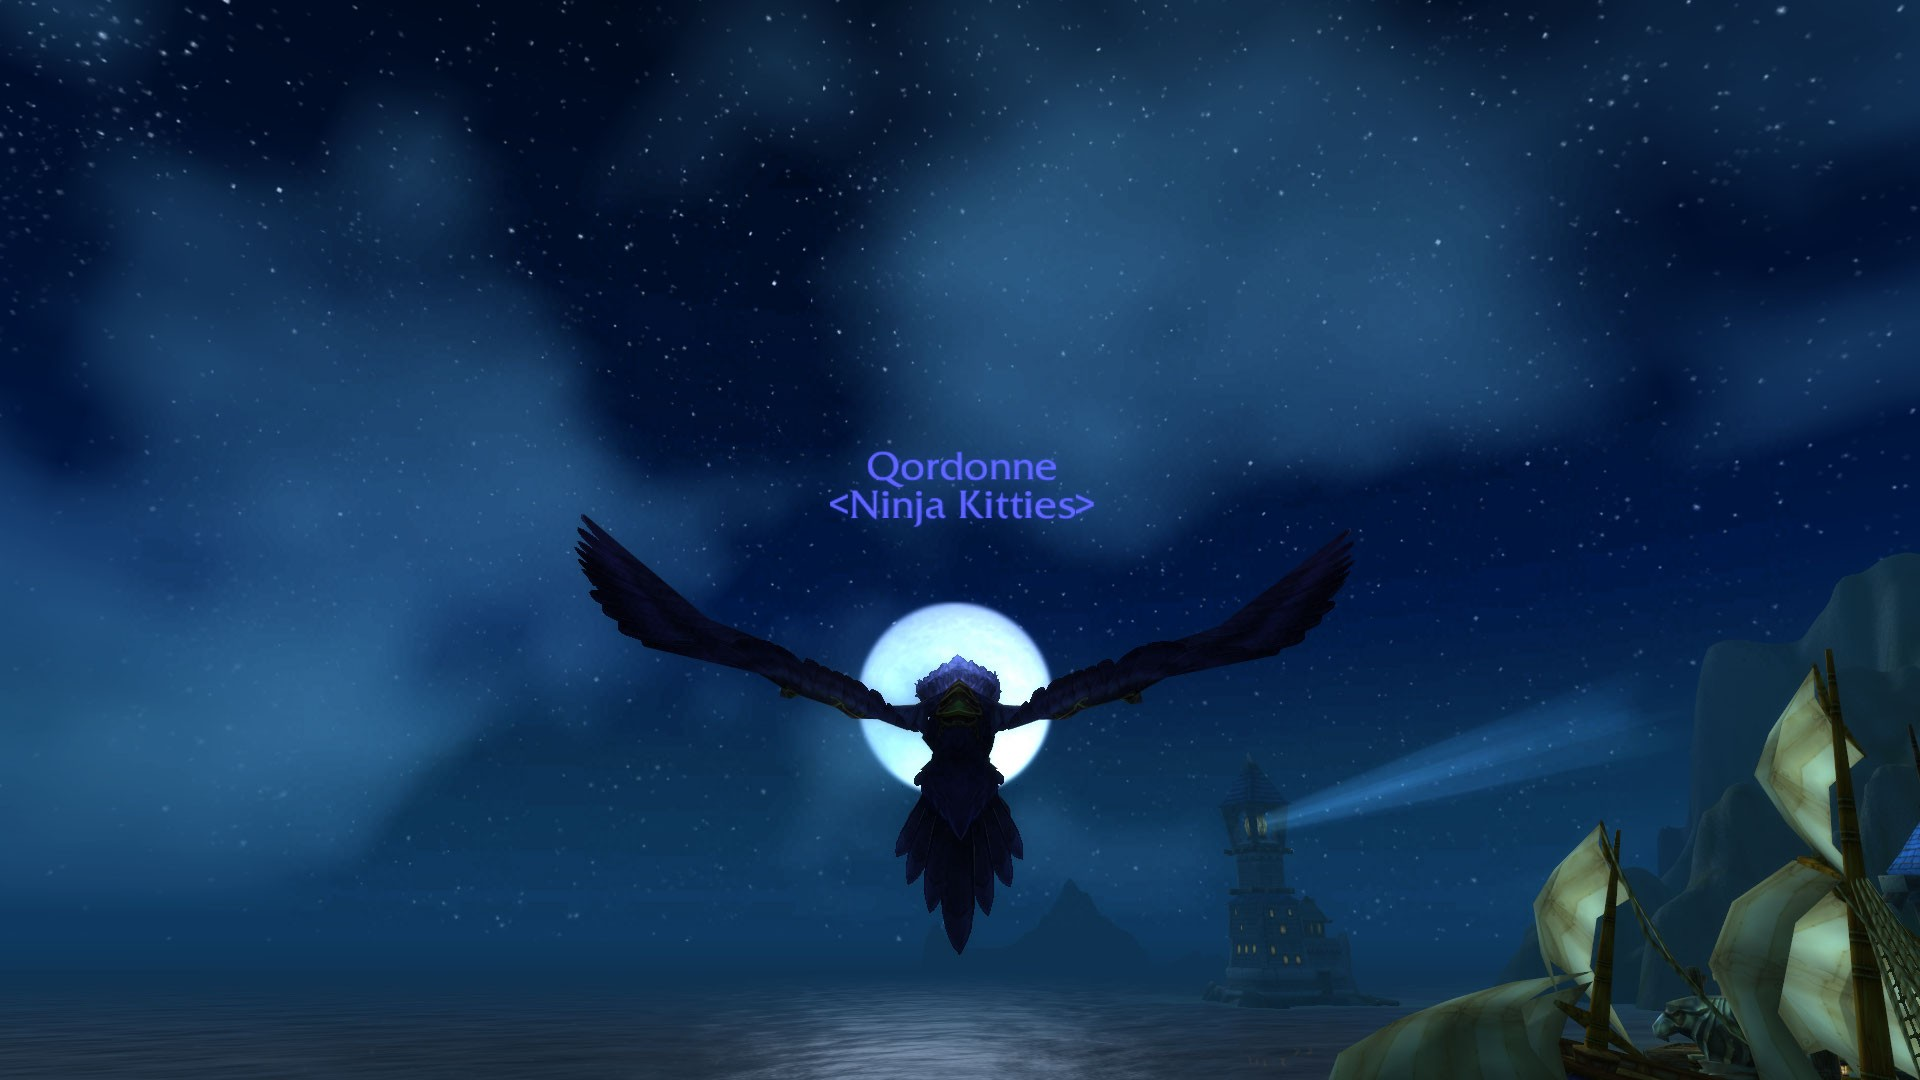 World of Warcraft - Druid Flight Form with Moon